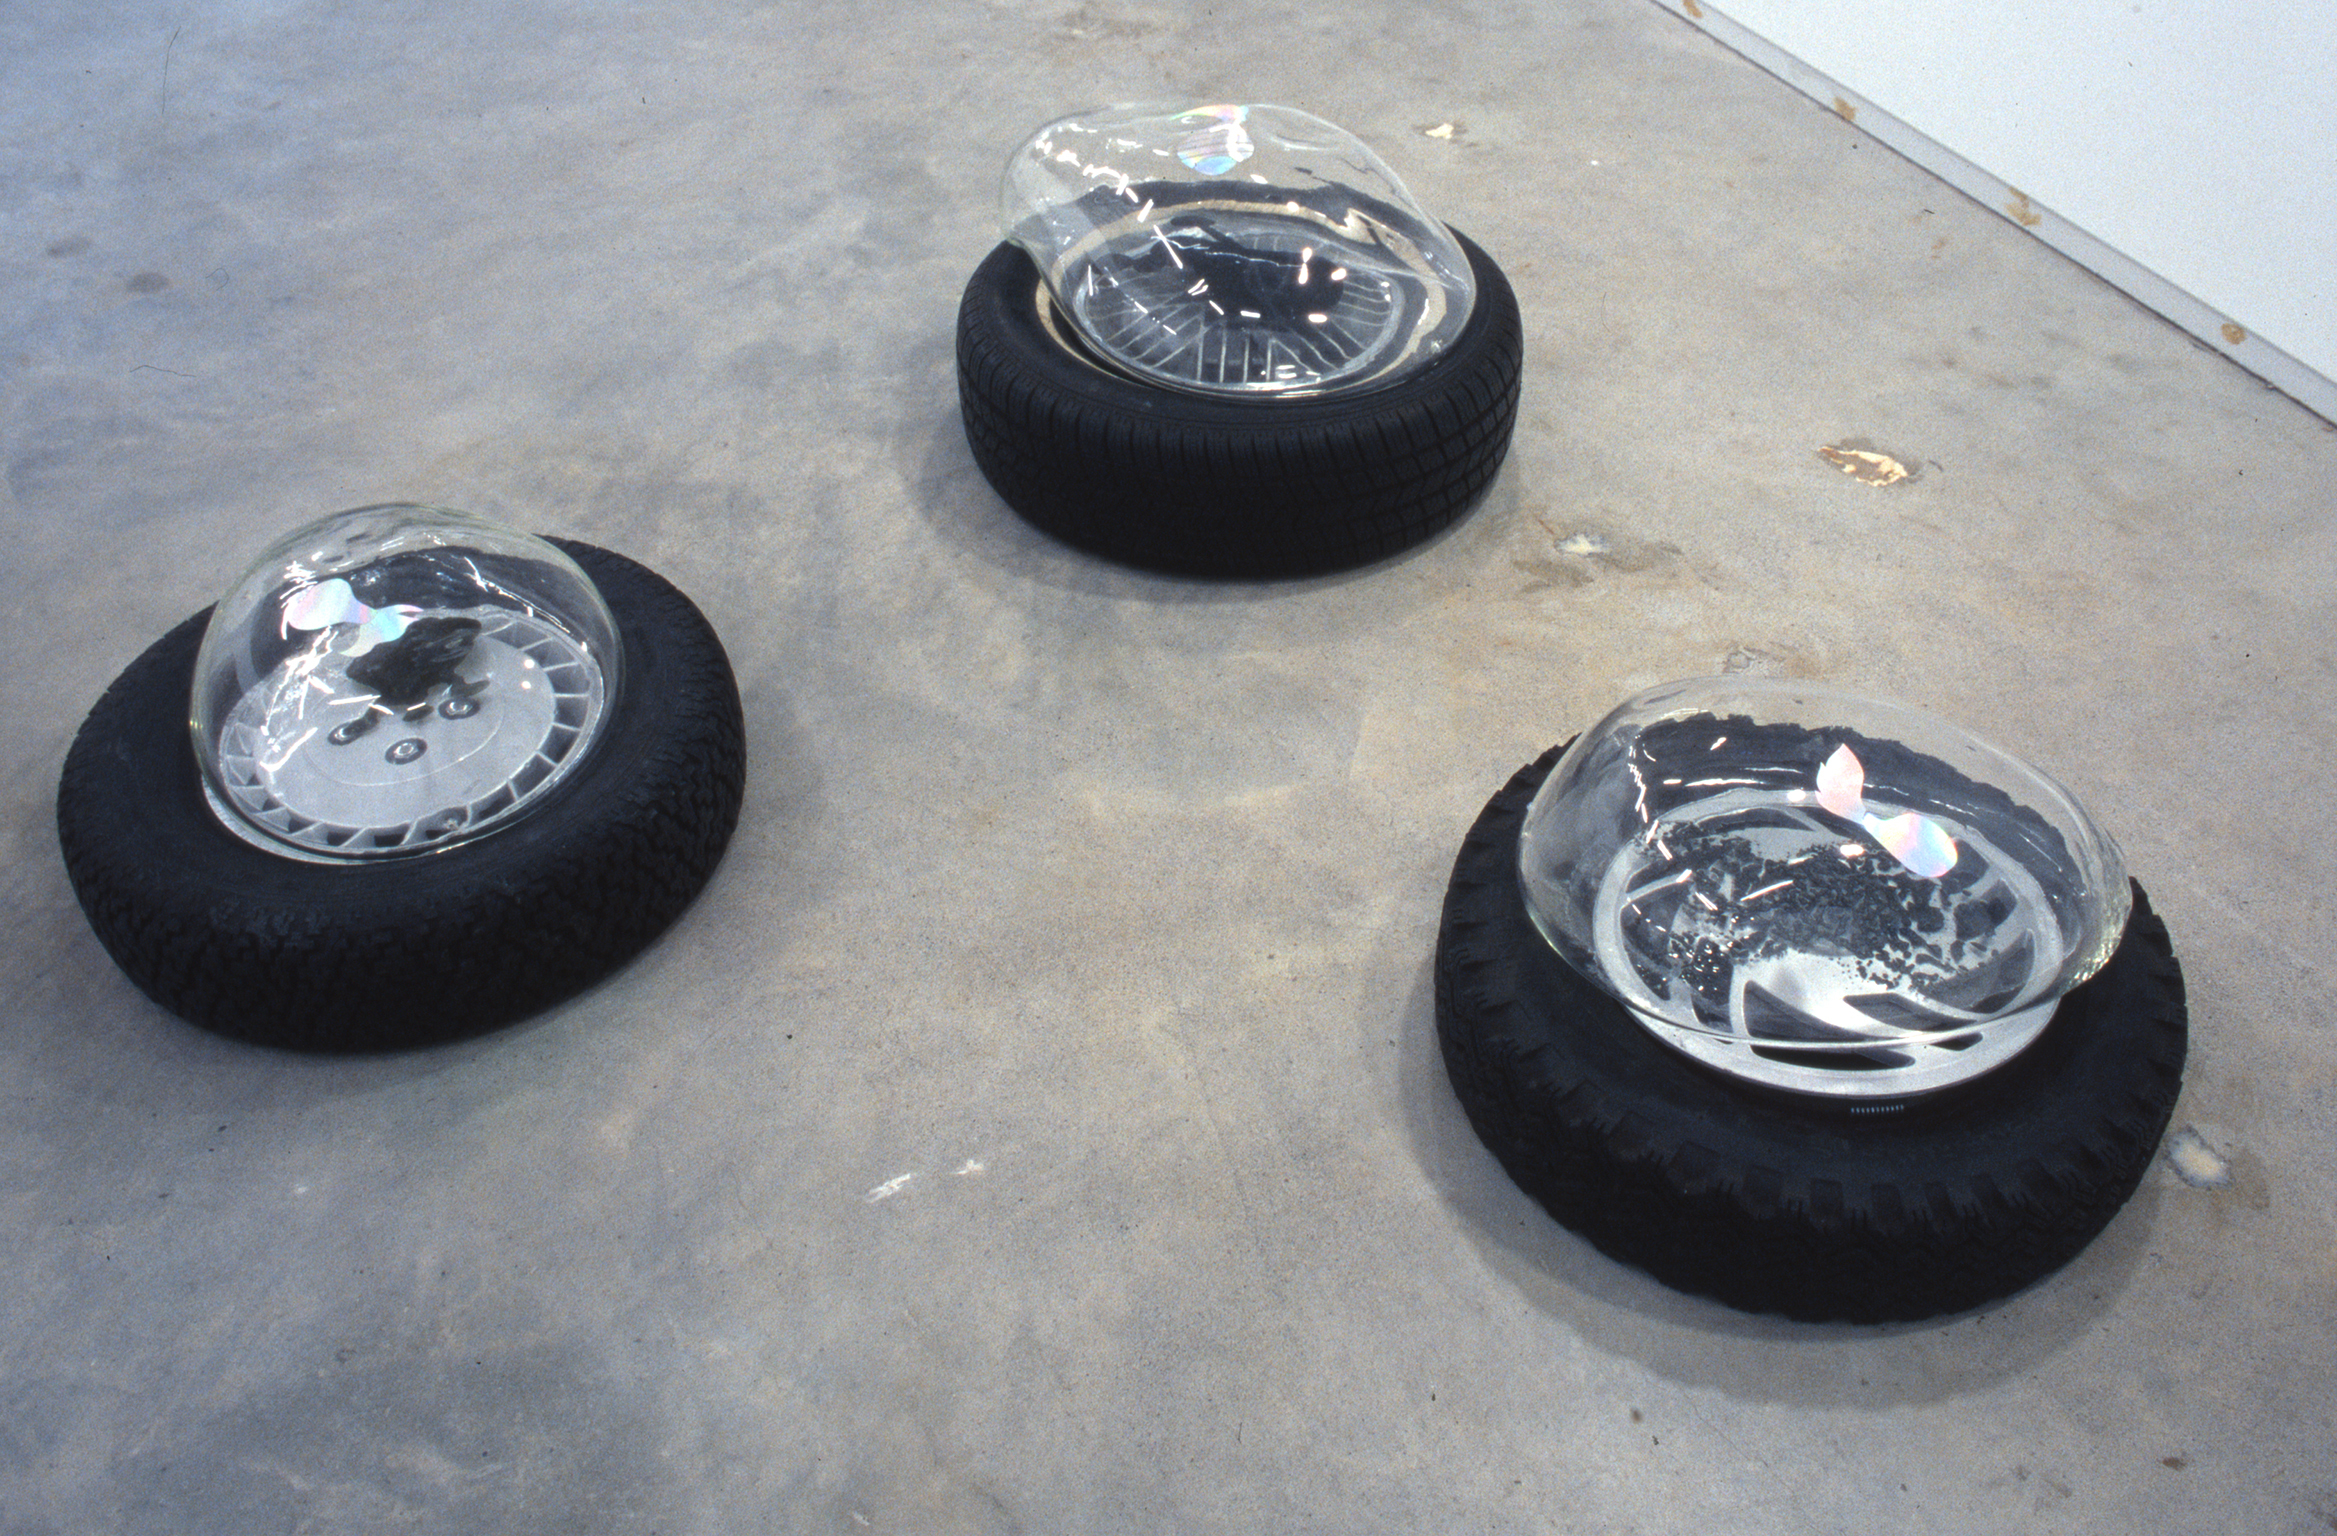 Jerry Pethick, Aerial View, 2001–2002, tires, spectrafoil cut-outs, black silicone, blown glass, dimensions variable by